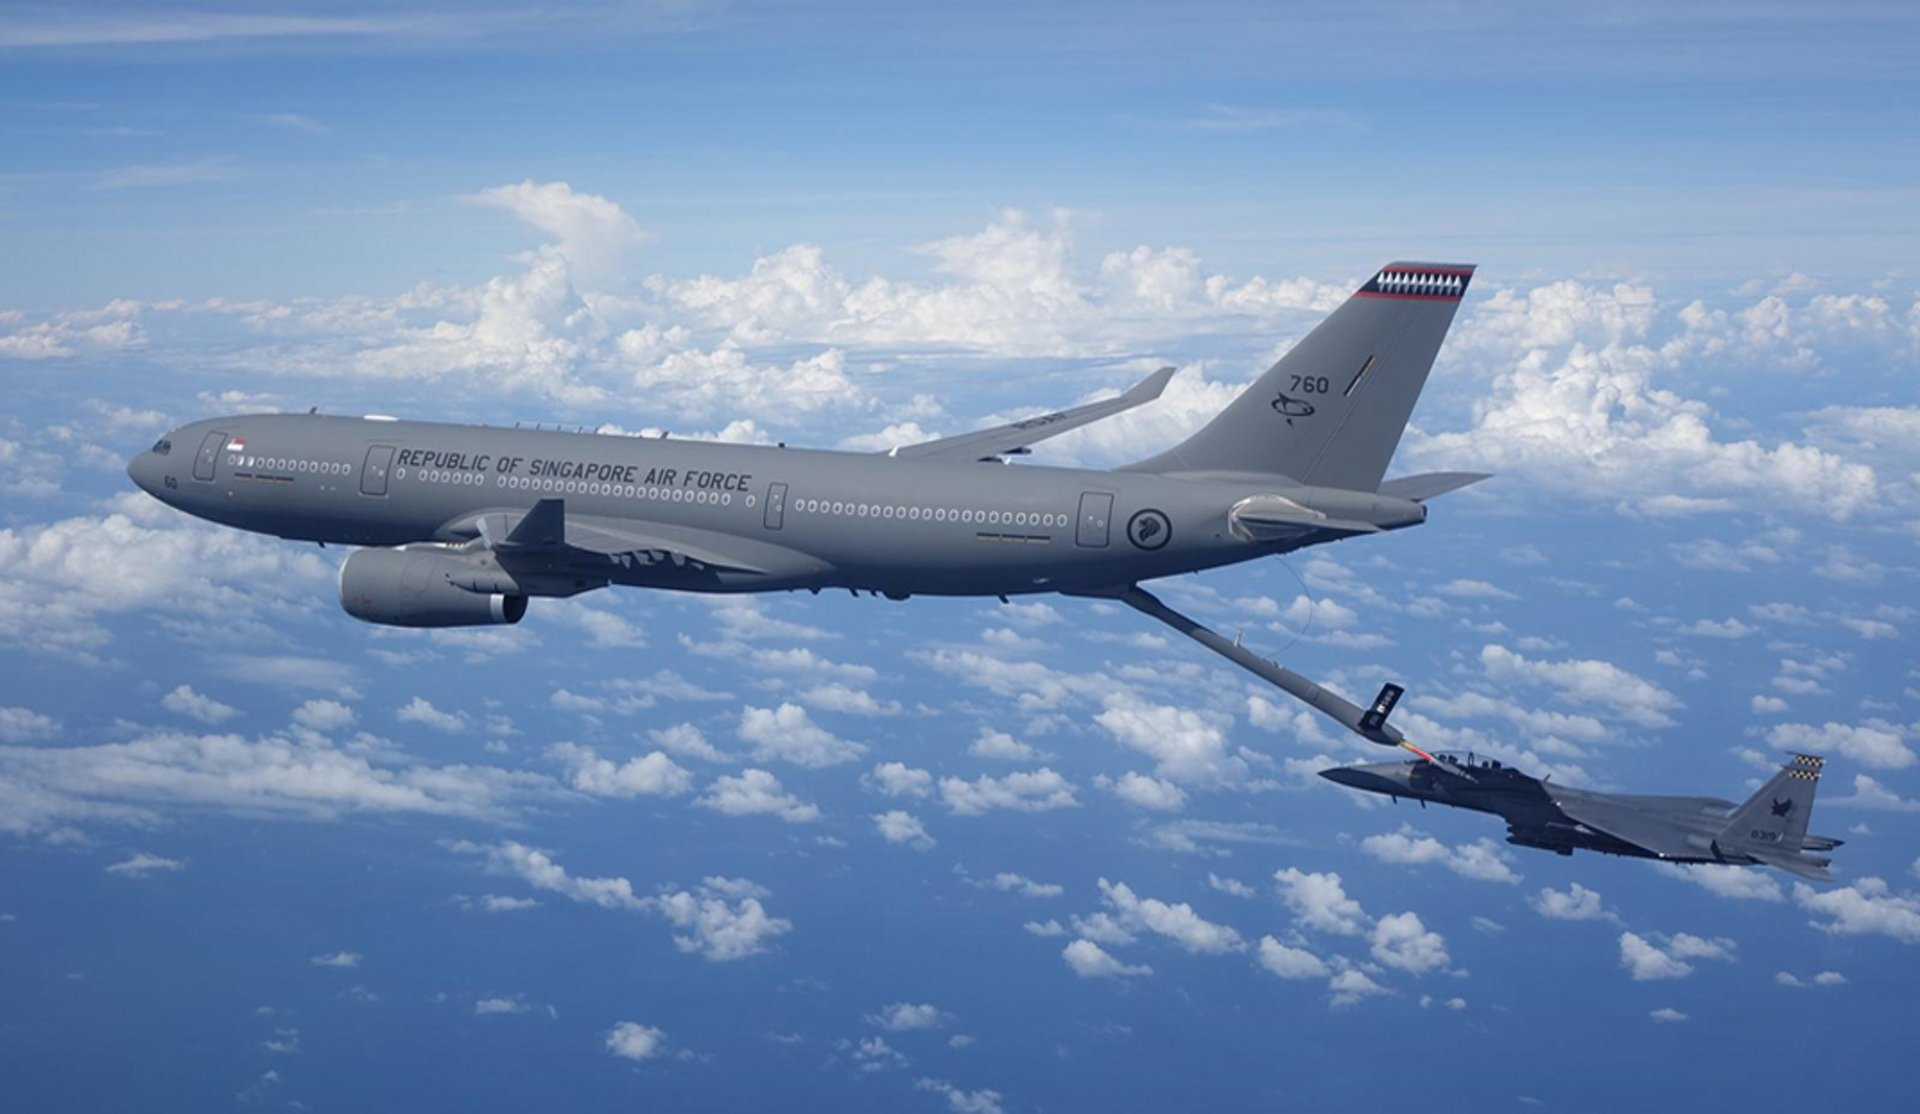 RSAF A330 MRTT in a refuelling operation with a RSAF F-15SG fighter.